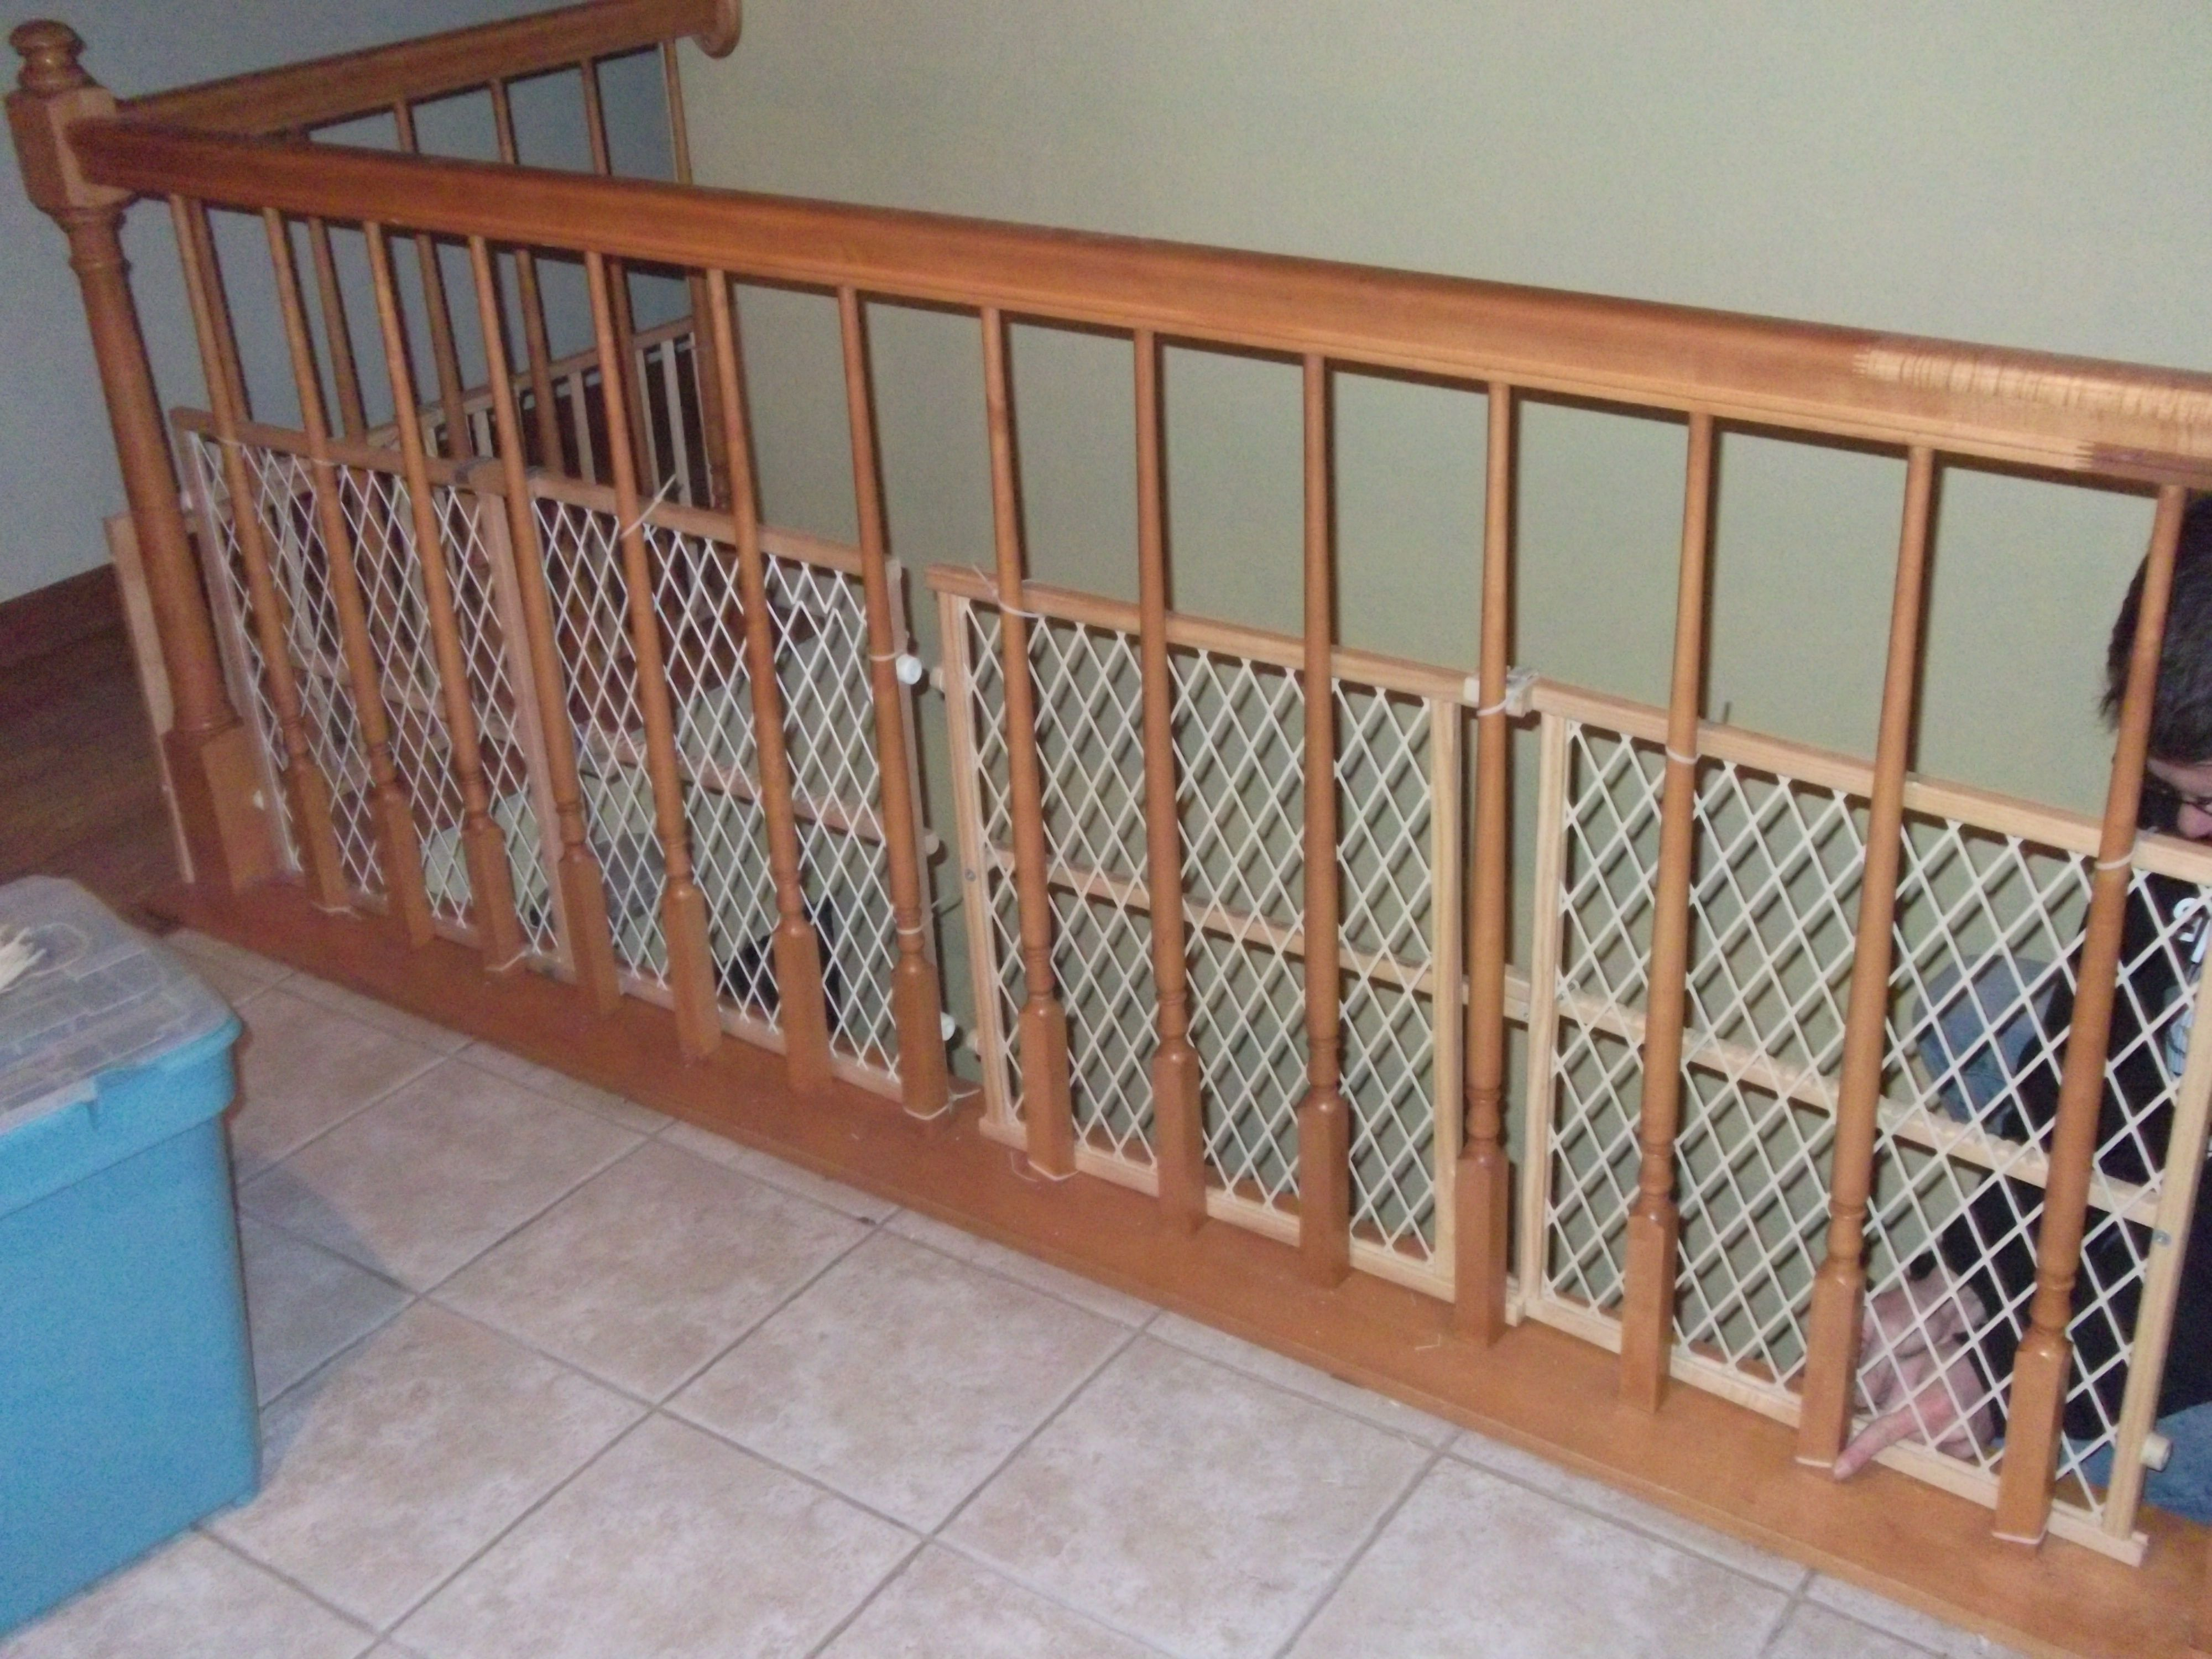 Baby Proofing Your Banister...just Zip Tie Some Baby Gates. Works Perfect